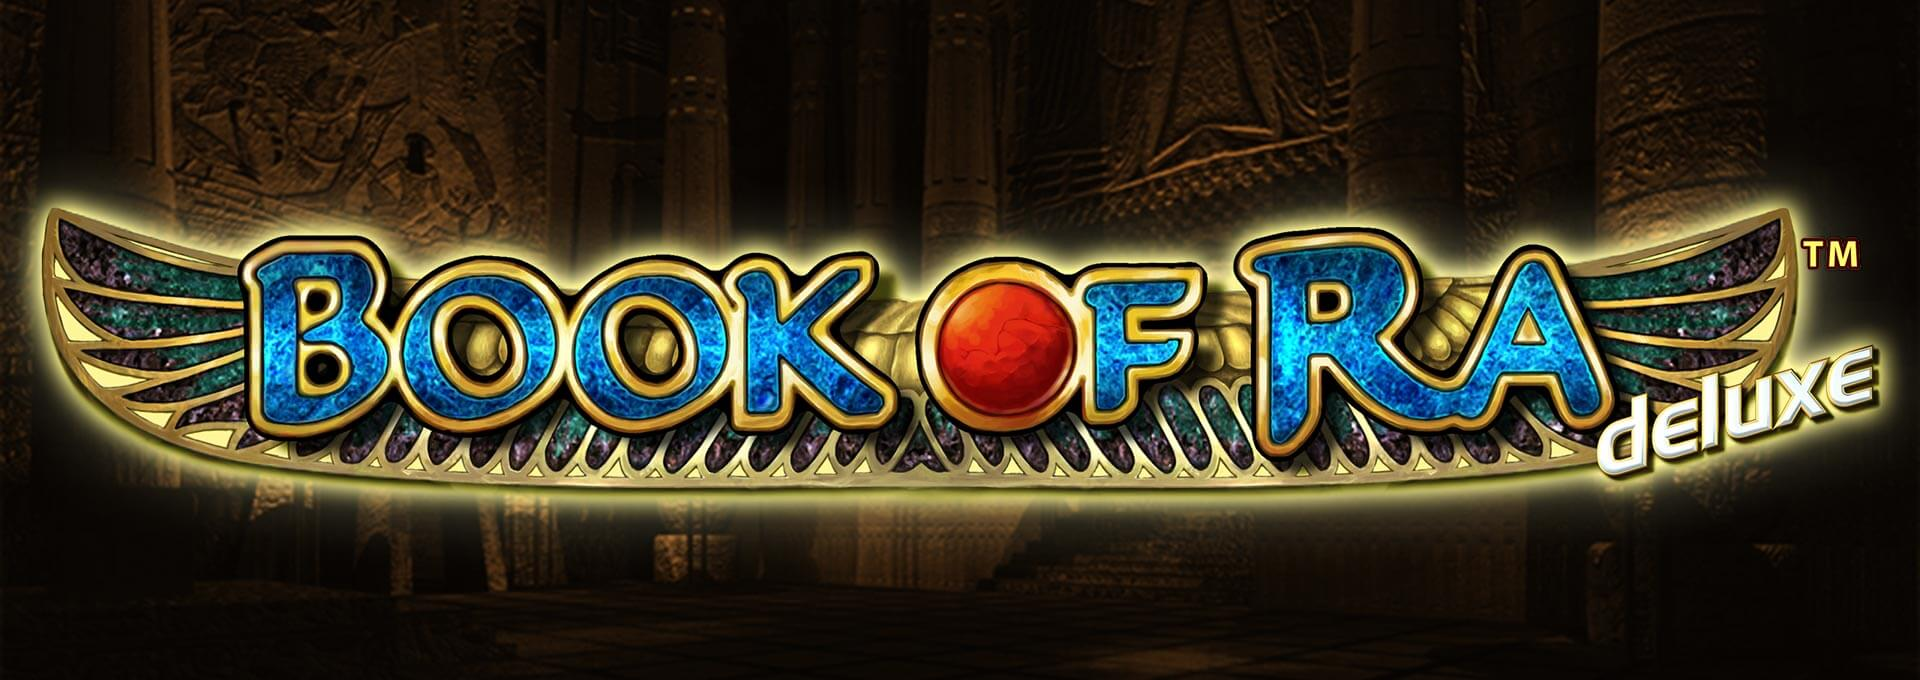 online casino deutschland book of ra deluxe free download